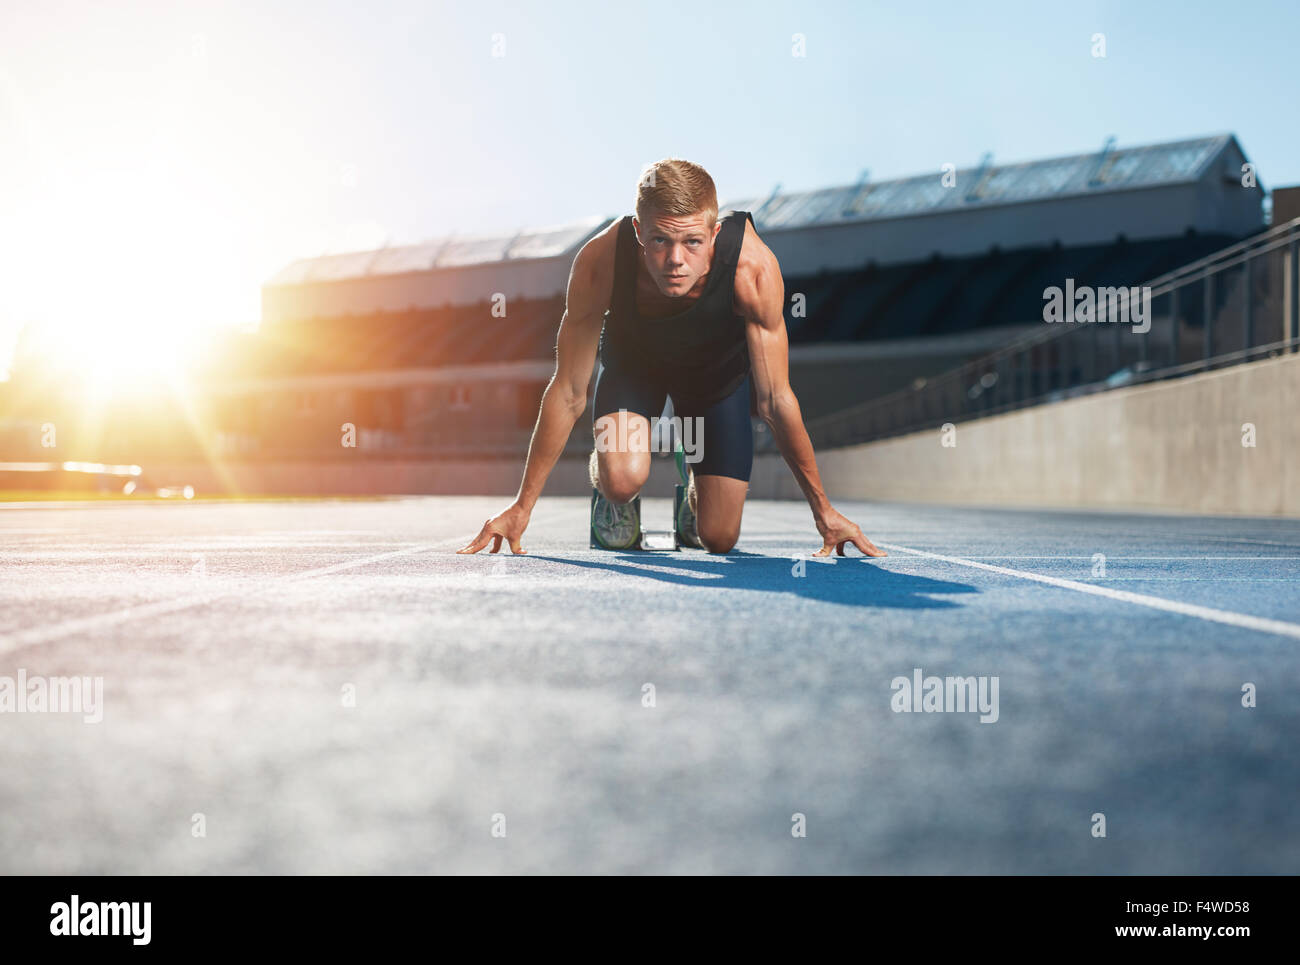 Young man athlete in starting position ready to start a race. Male sprinter ready for a run on racetrack looking - Stock Image